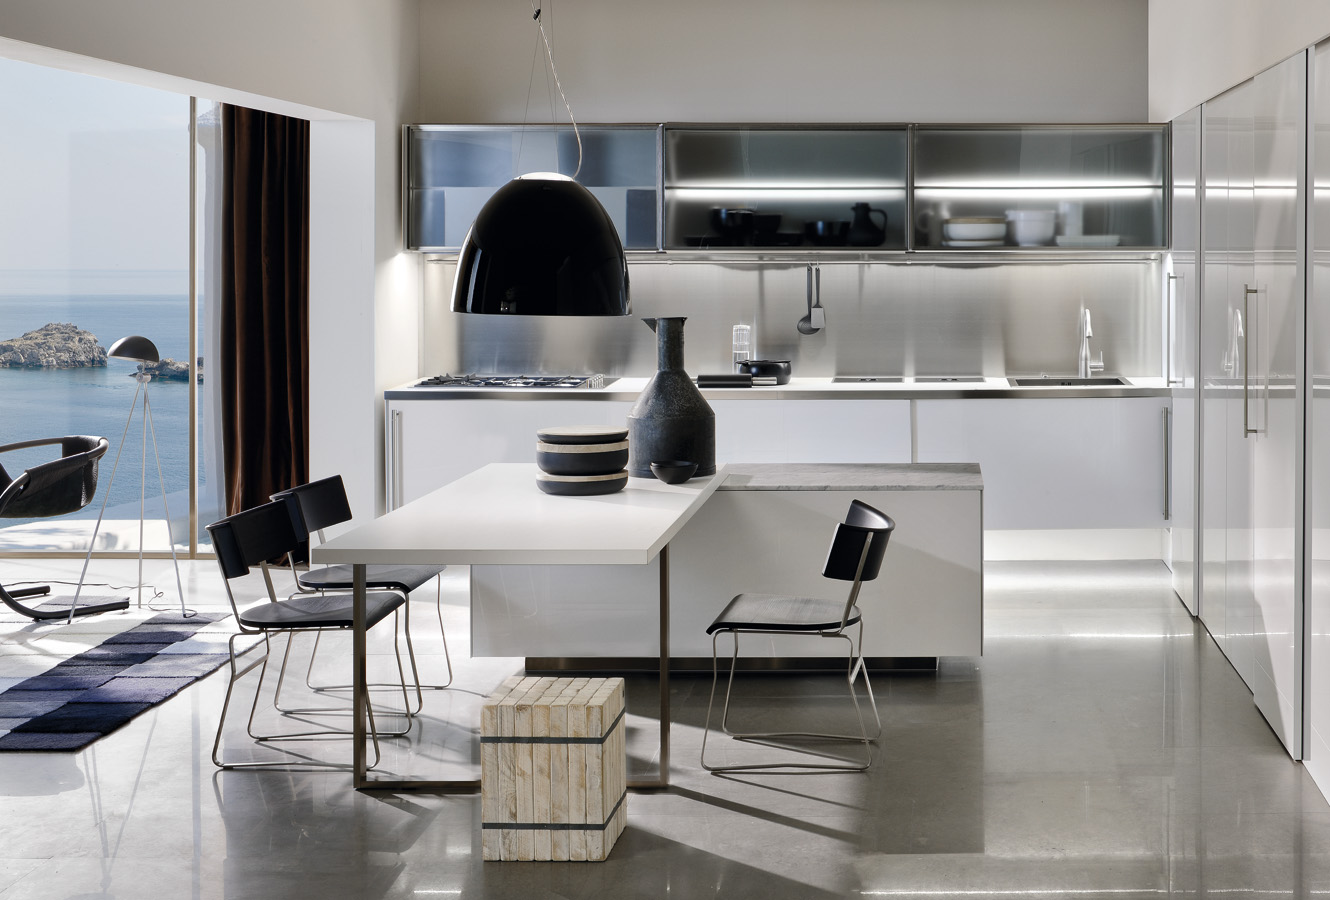 Modern Kitchen Dining Space - Modern italian kitchen design from arclinea